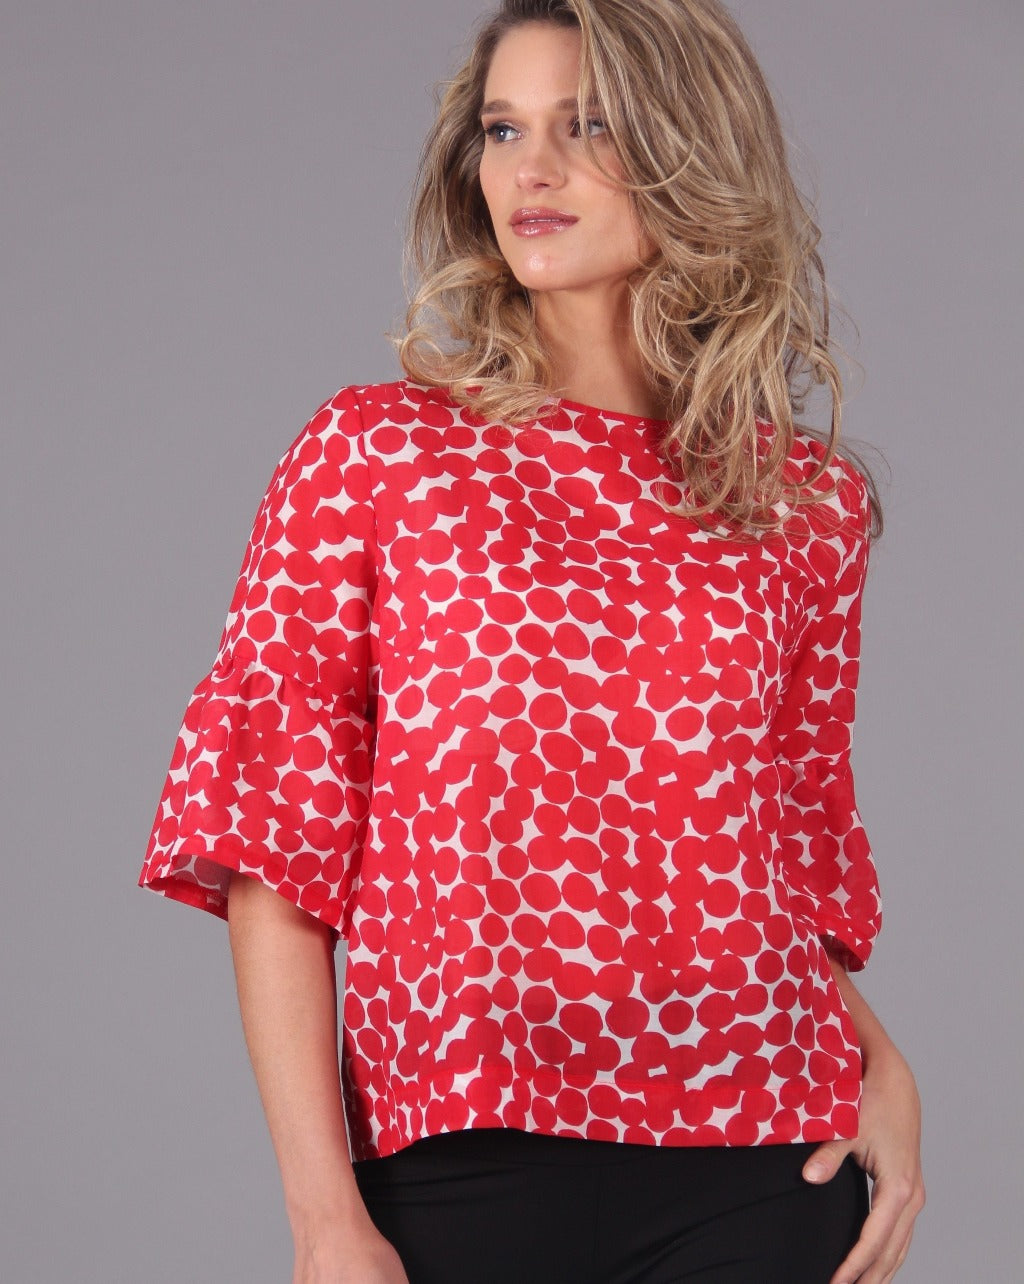 DITEFUL Top in Printed Cotton Silk - Final Sale